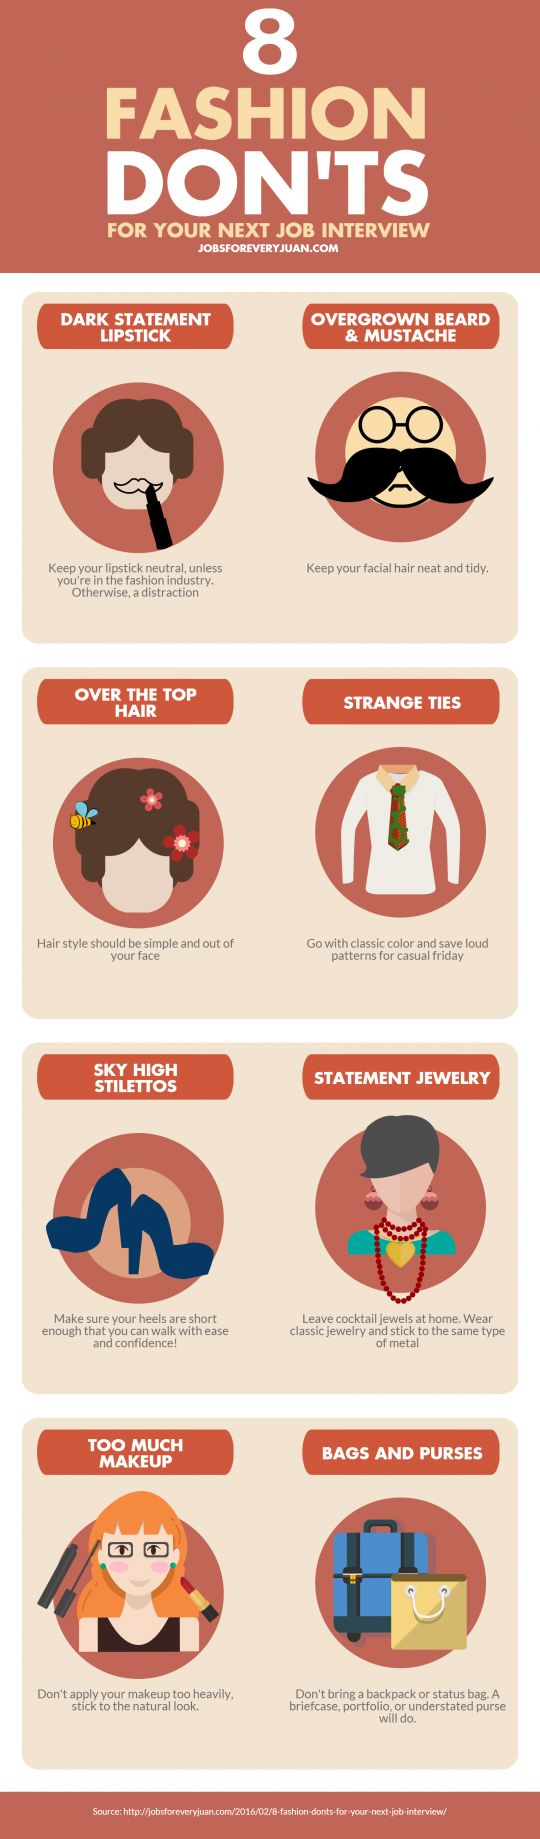 8 Fashion Donu0027ts For Your Next Job Interview [Infographic]. Job  Interview TipsJob InterviewsCareer